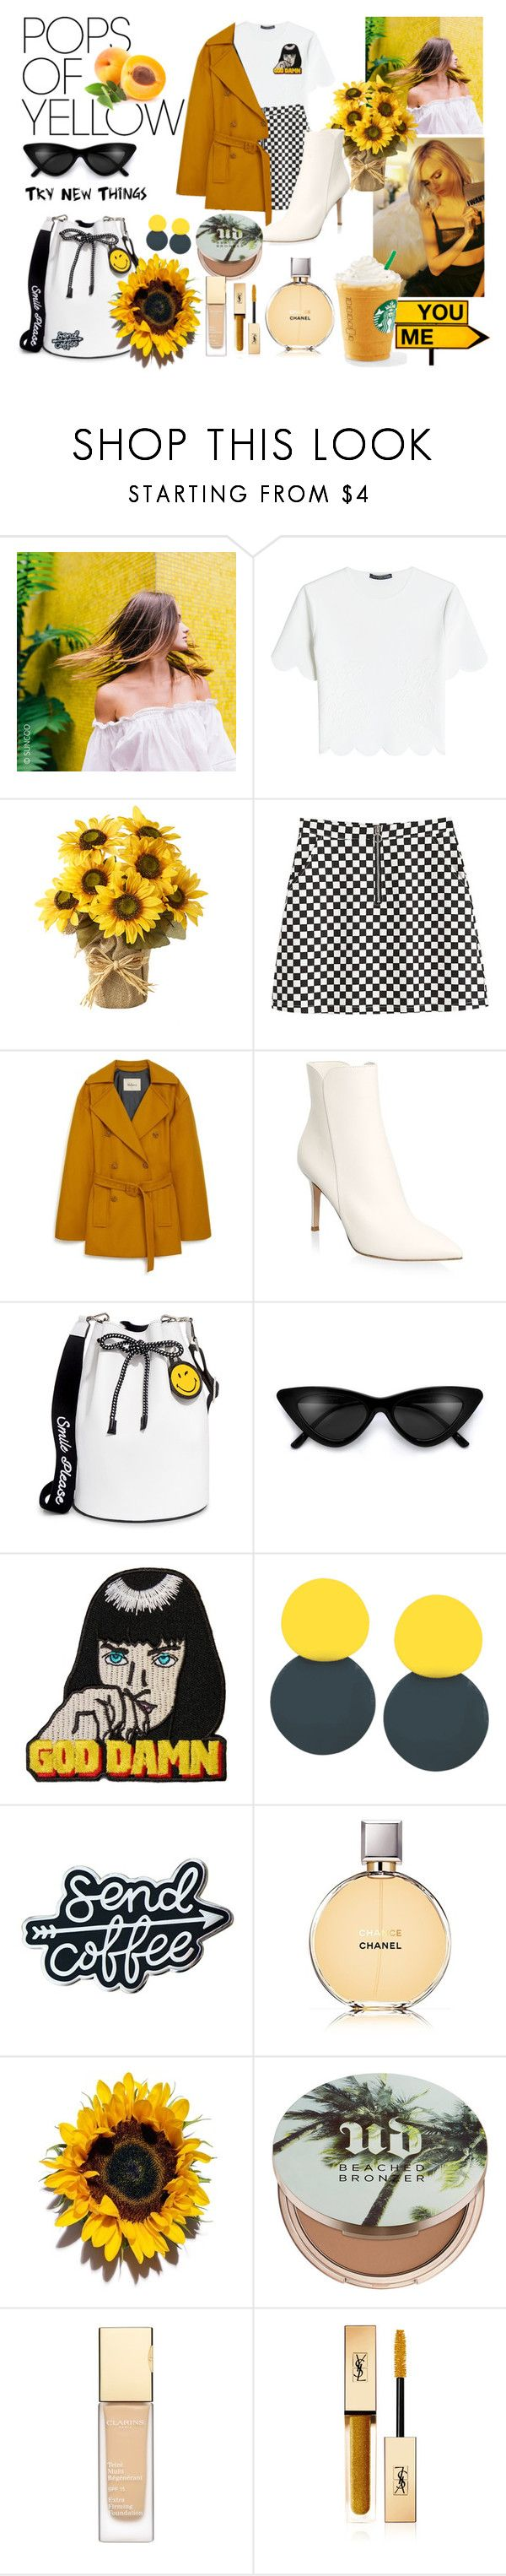 """hellow yellow"" by rafinhachimati ❤ liked on Polyvore featuring Jimmy Choo, Alexander McQueen, Mulberry, Gianvito Rossi, Joshua's, Wallace, Chanel, Urban Decay, Yves Saint Laurent and PopsOfYellow"